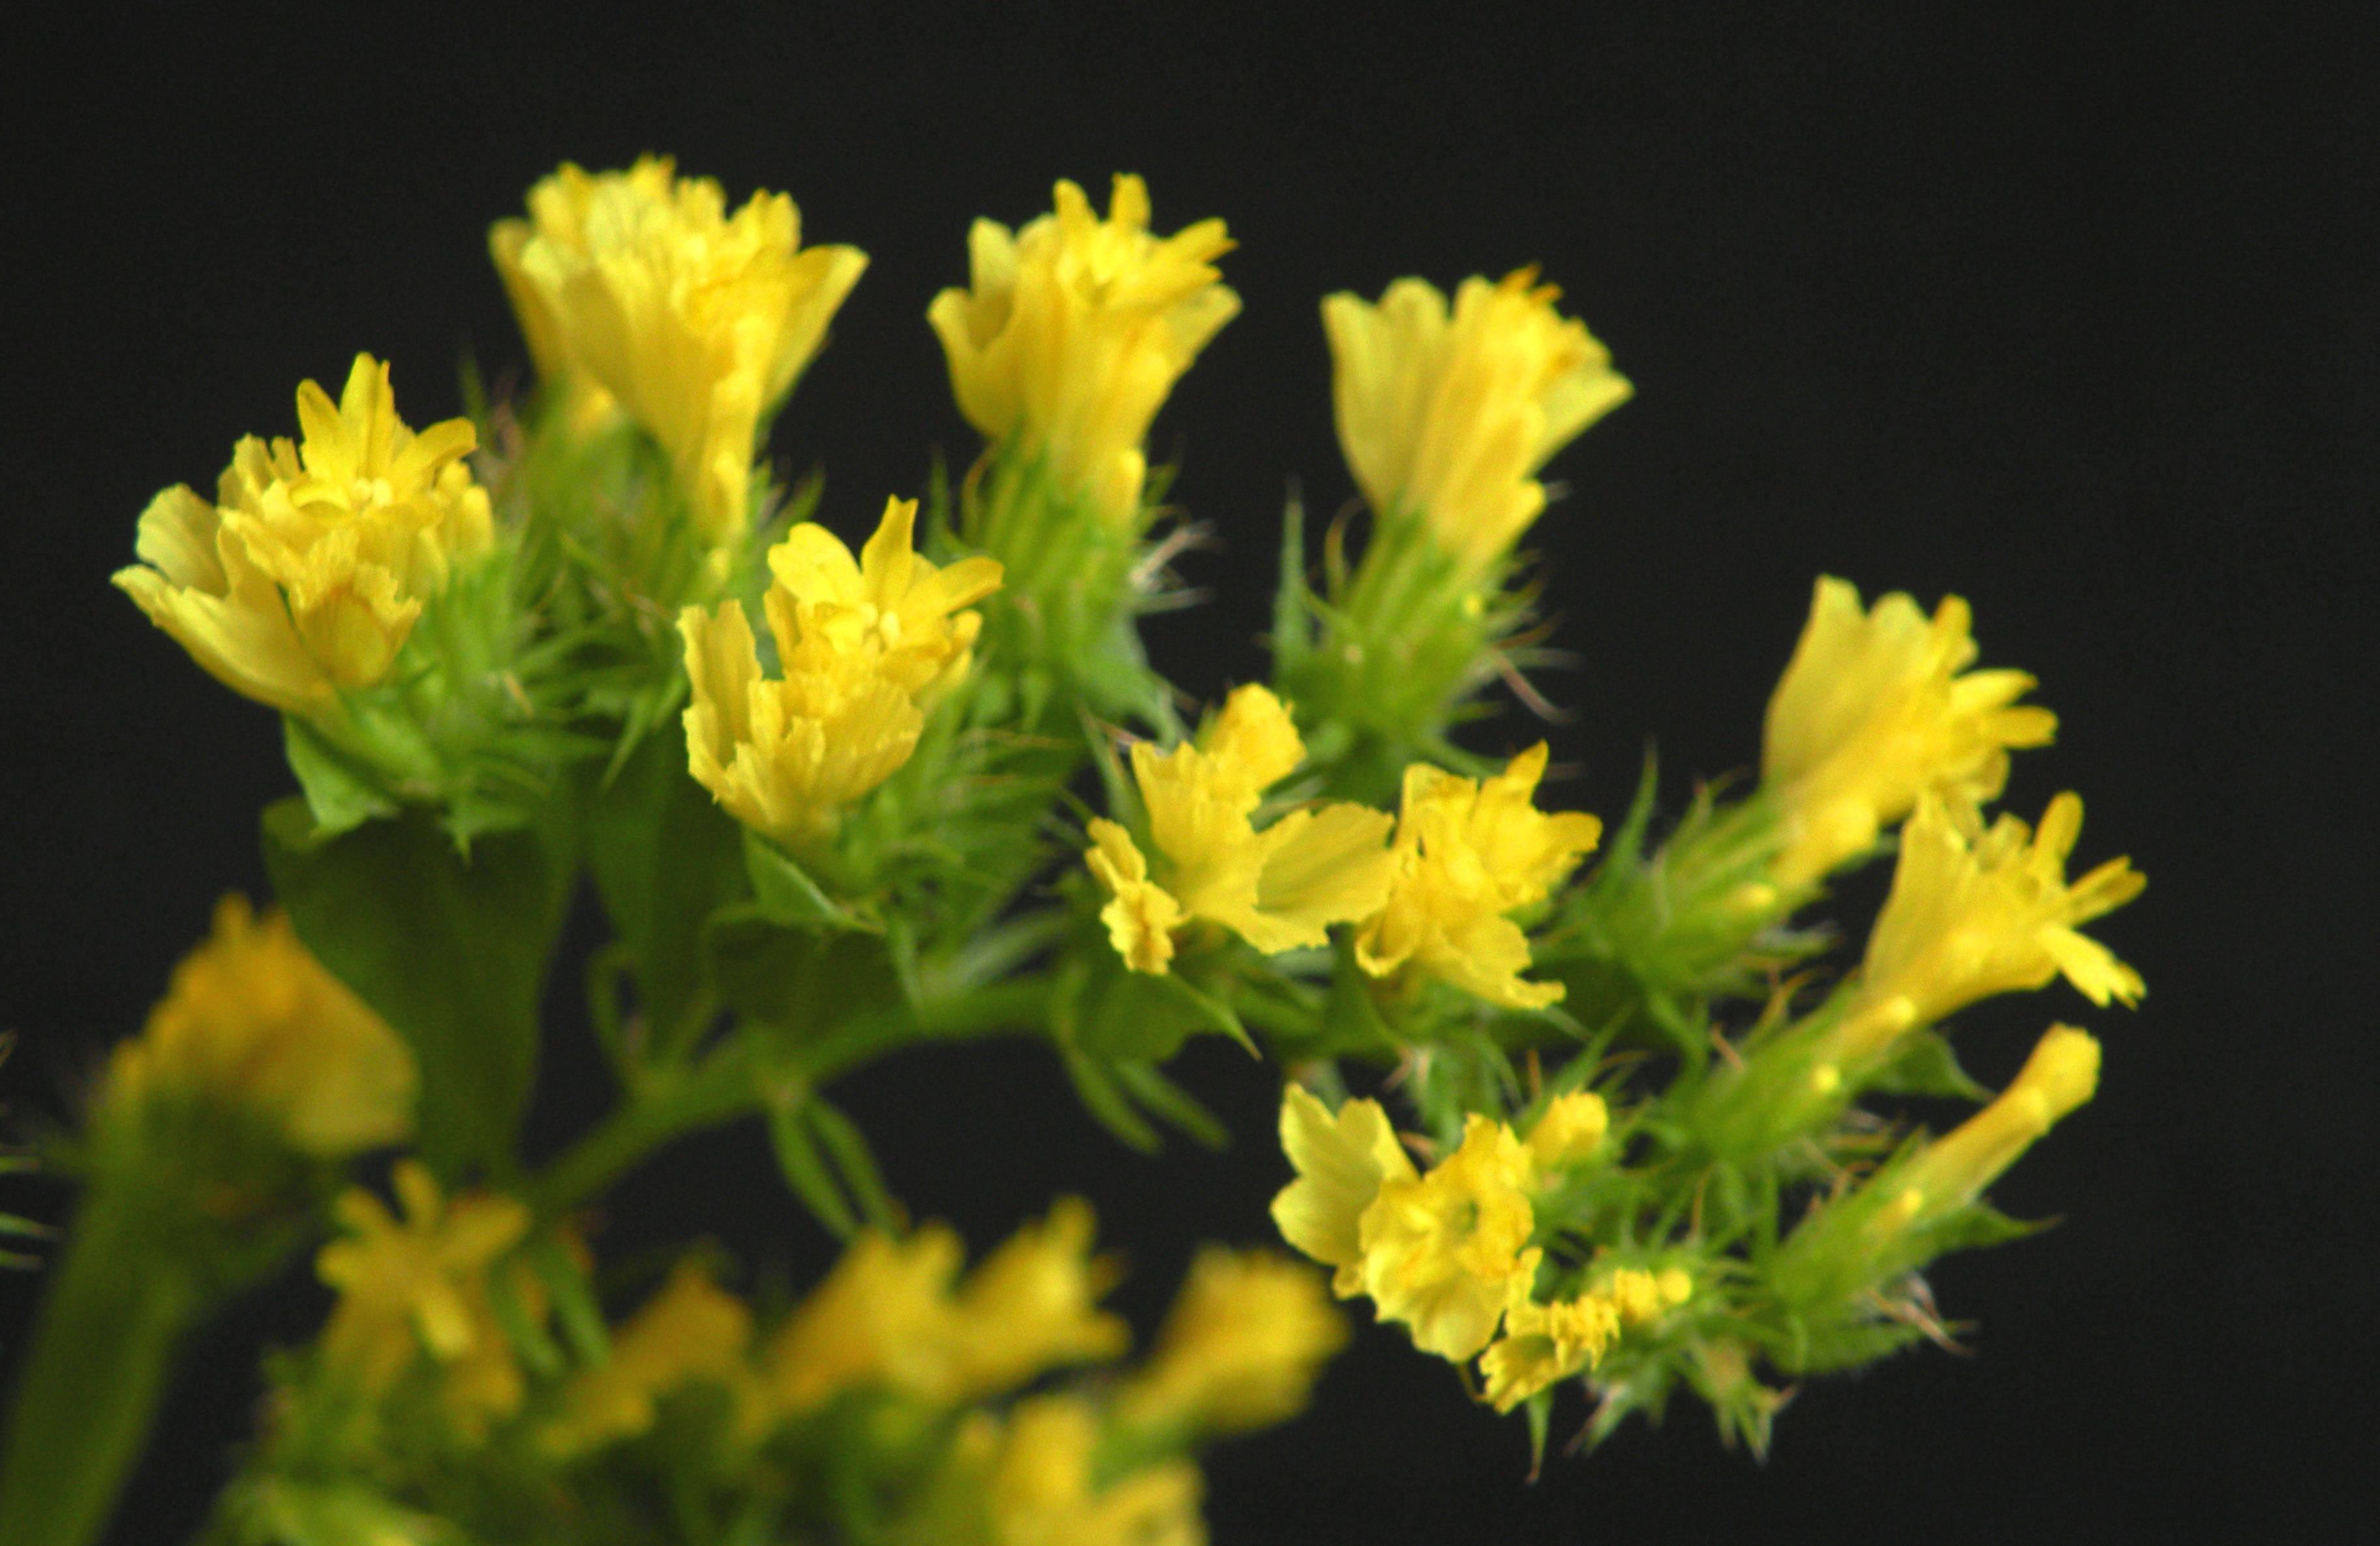 Fileyellow statice flowers close up from topg wikimedia commons fileyellow statice flowers close up from topg mightylinksfo